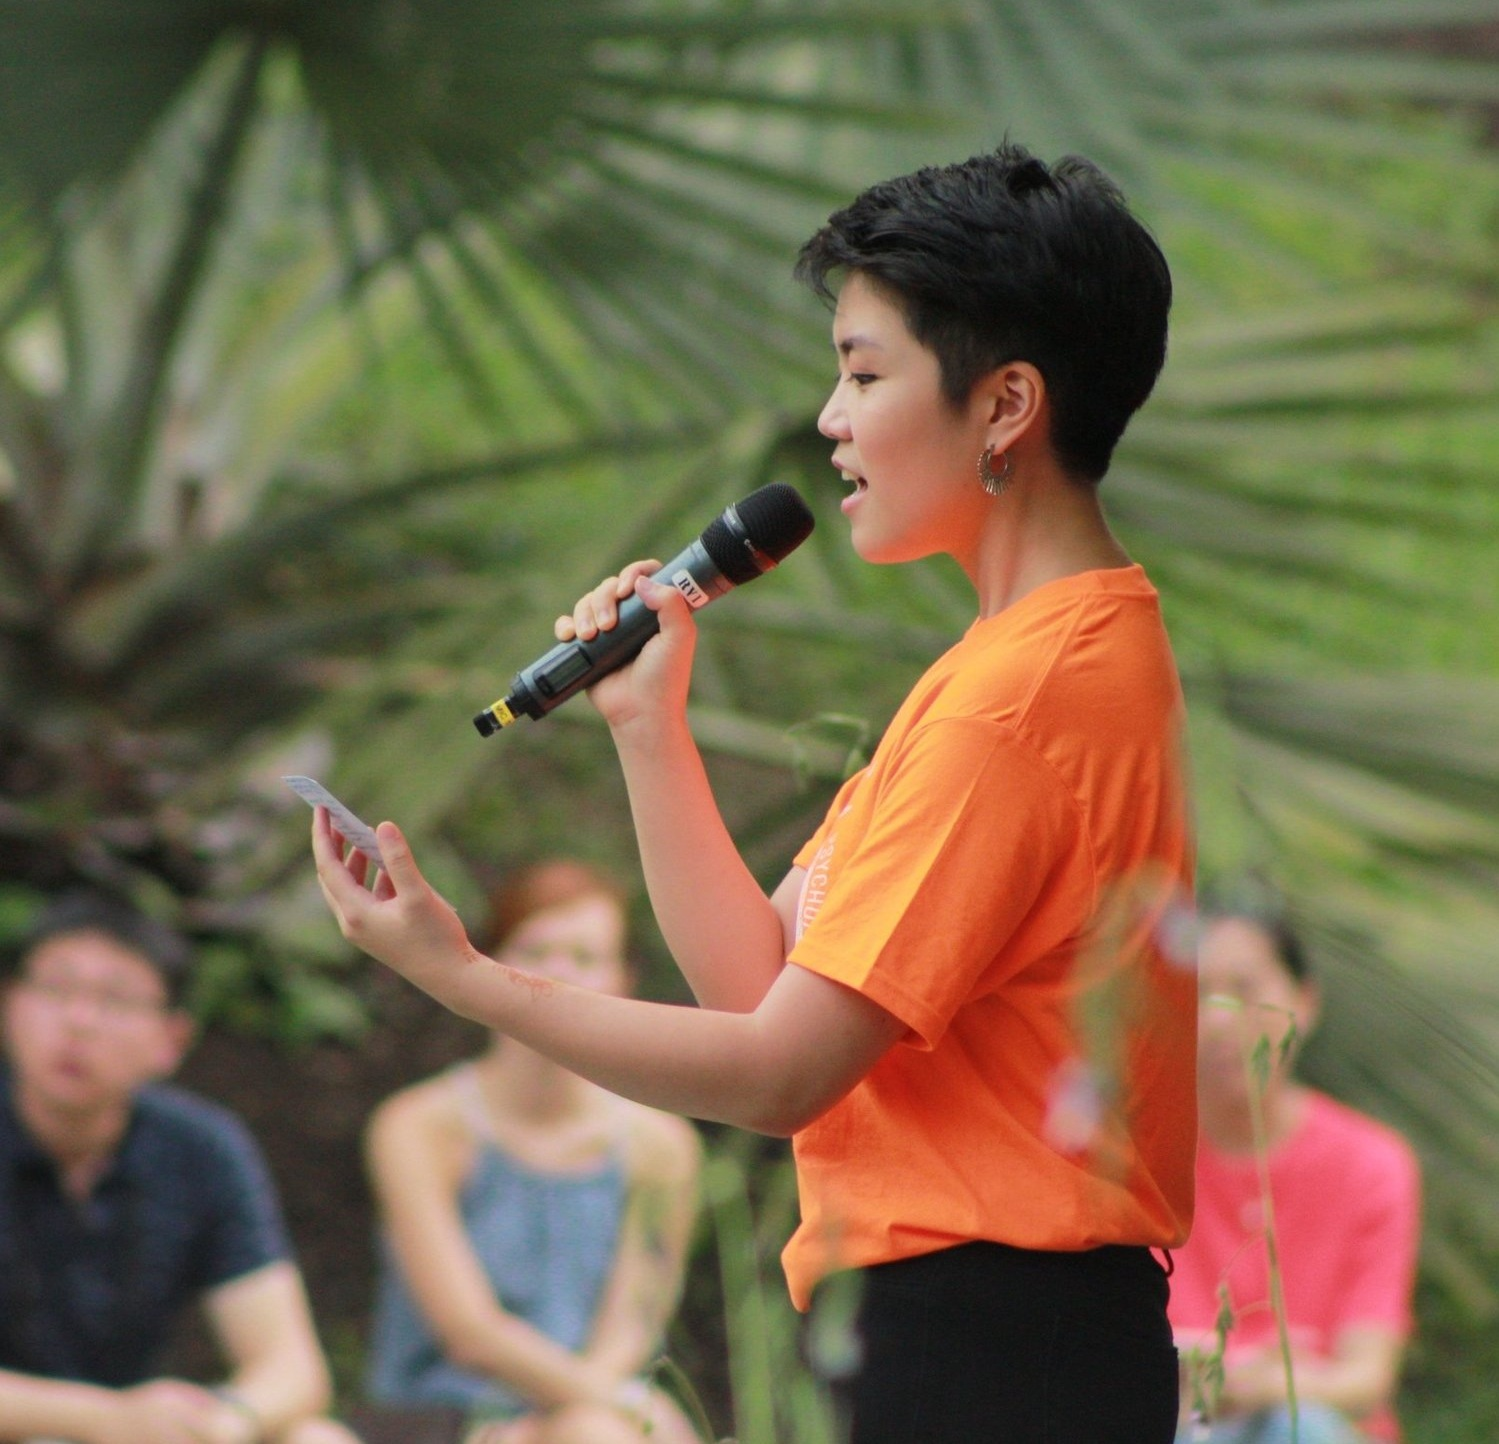 Xiangning emceeing for  Beethoven im Garten  at the Singapore Botanic Gardens Shaw Foundation Symphony Stage.